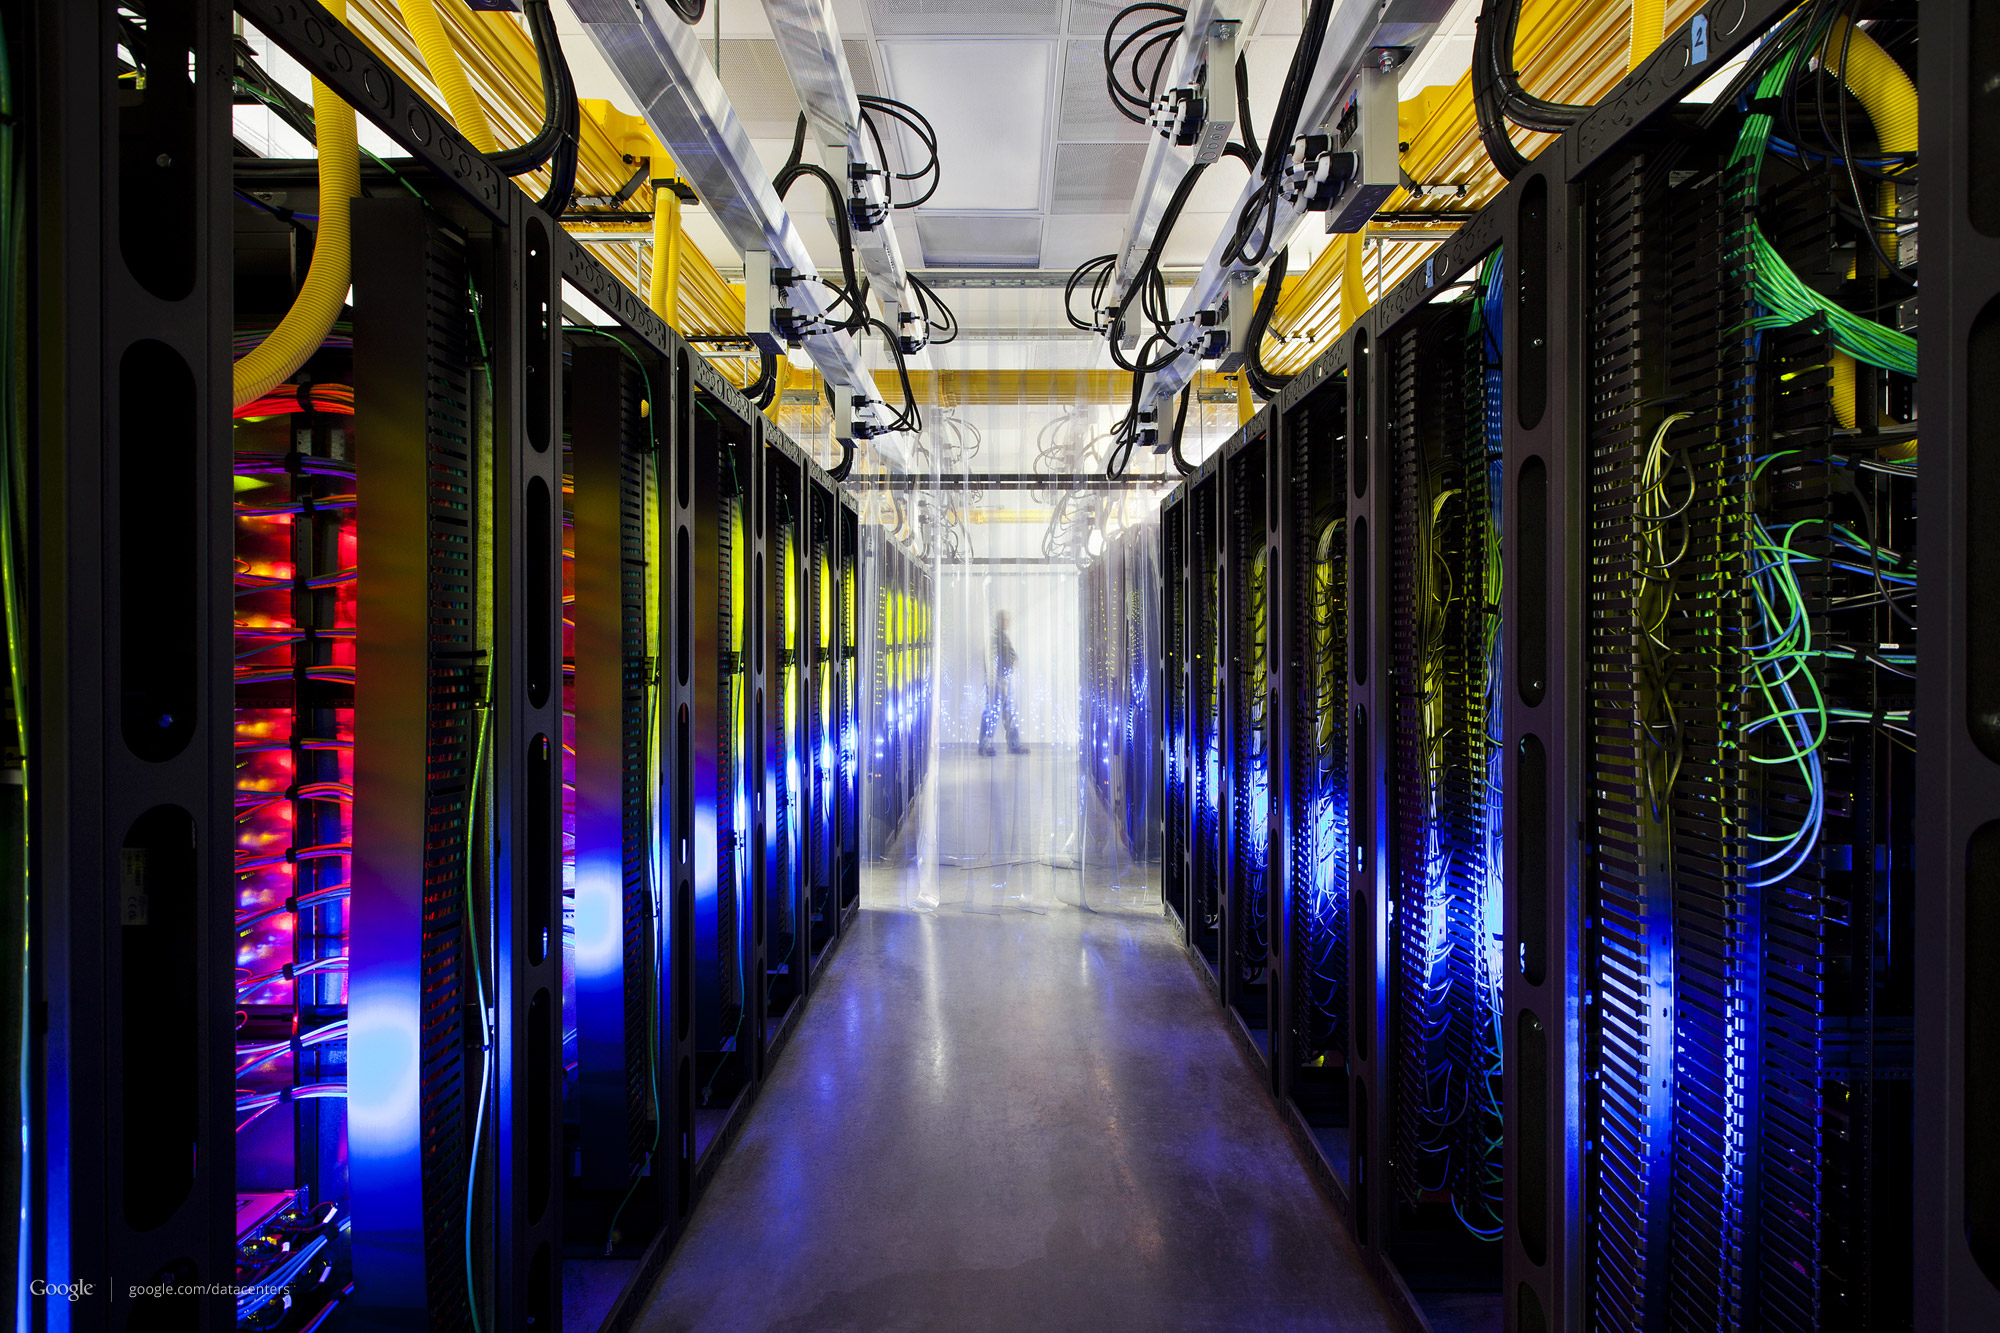 Google Iowa Data Center